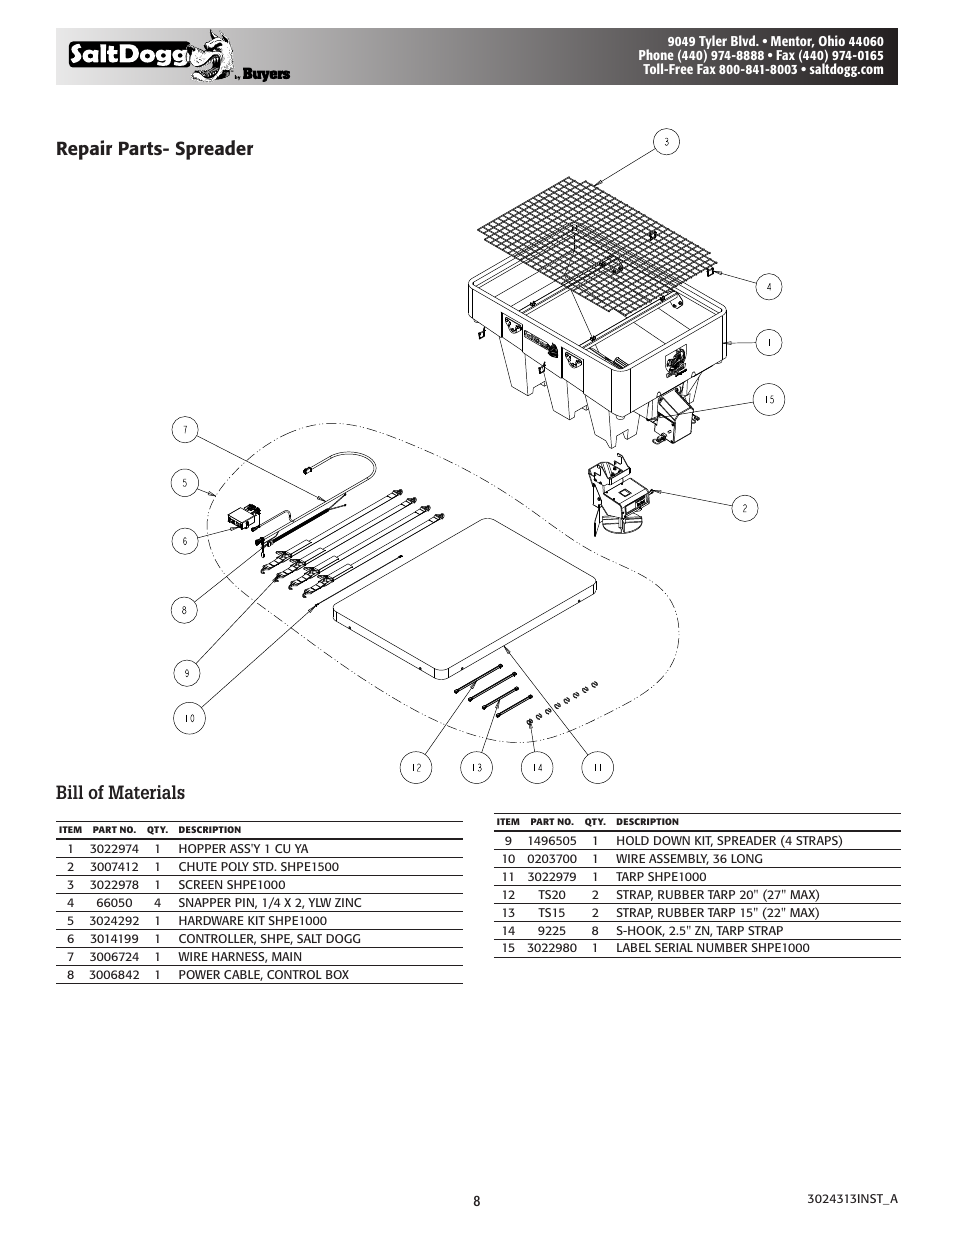 Bill Of Materials Repair Parts Spreader Saltdogg Shpe1000 Series Salt Dogg Controller Wiring Diagram Electric Drive Poly Hopper User Manual Page 8